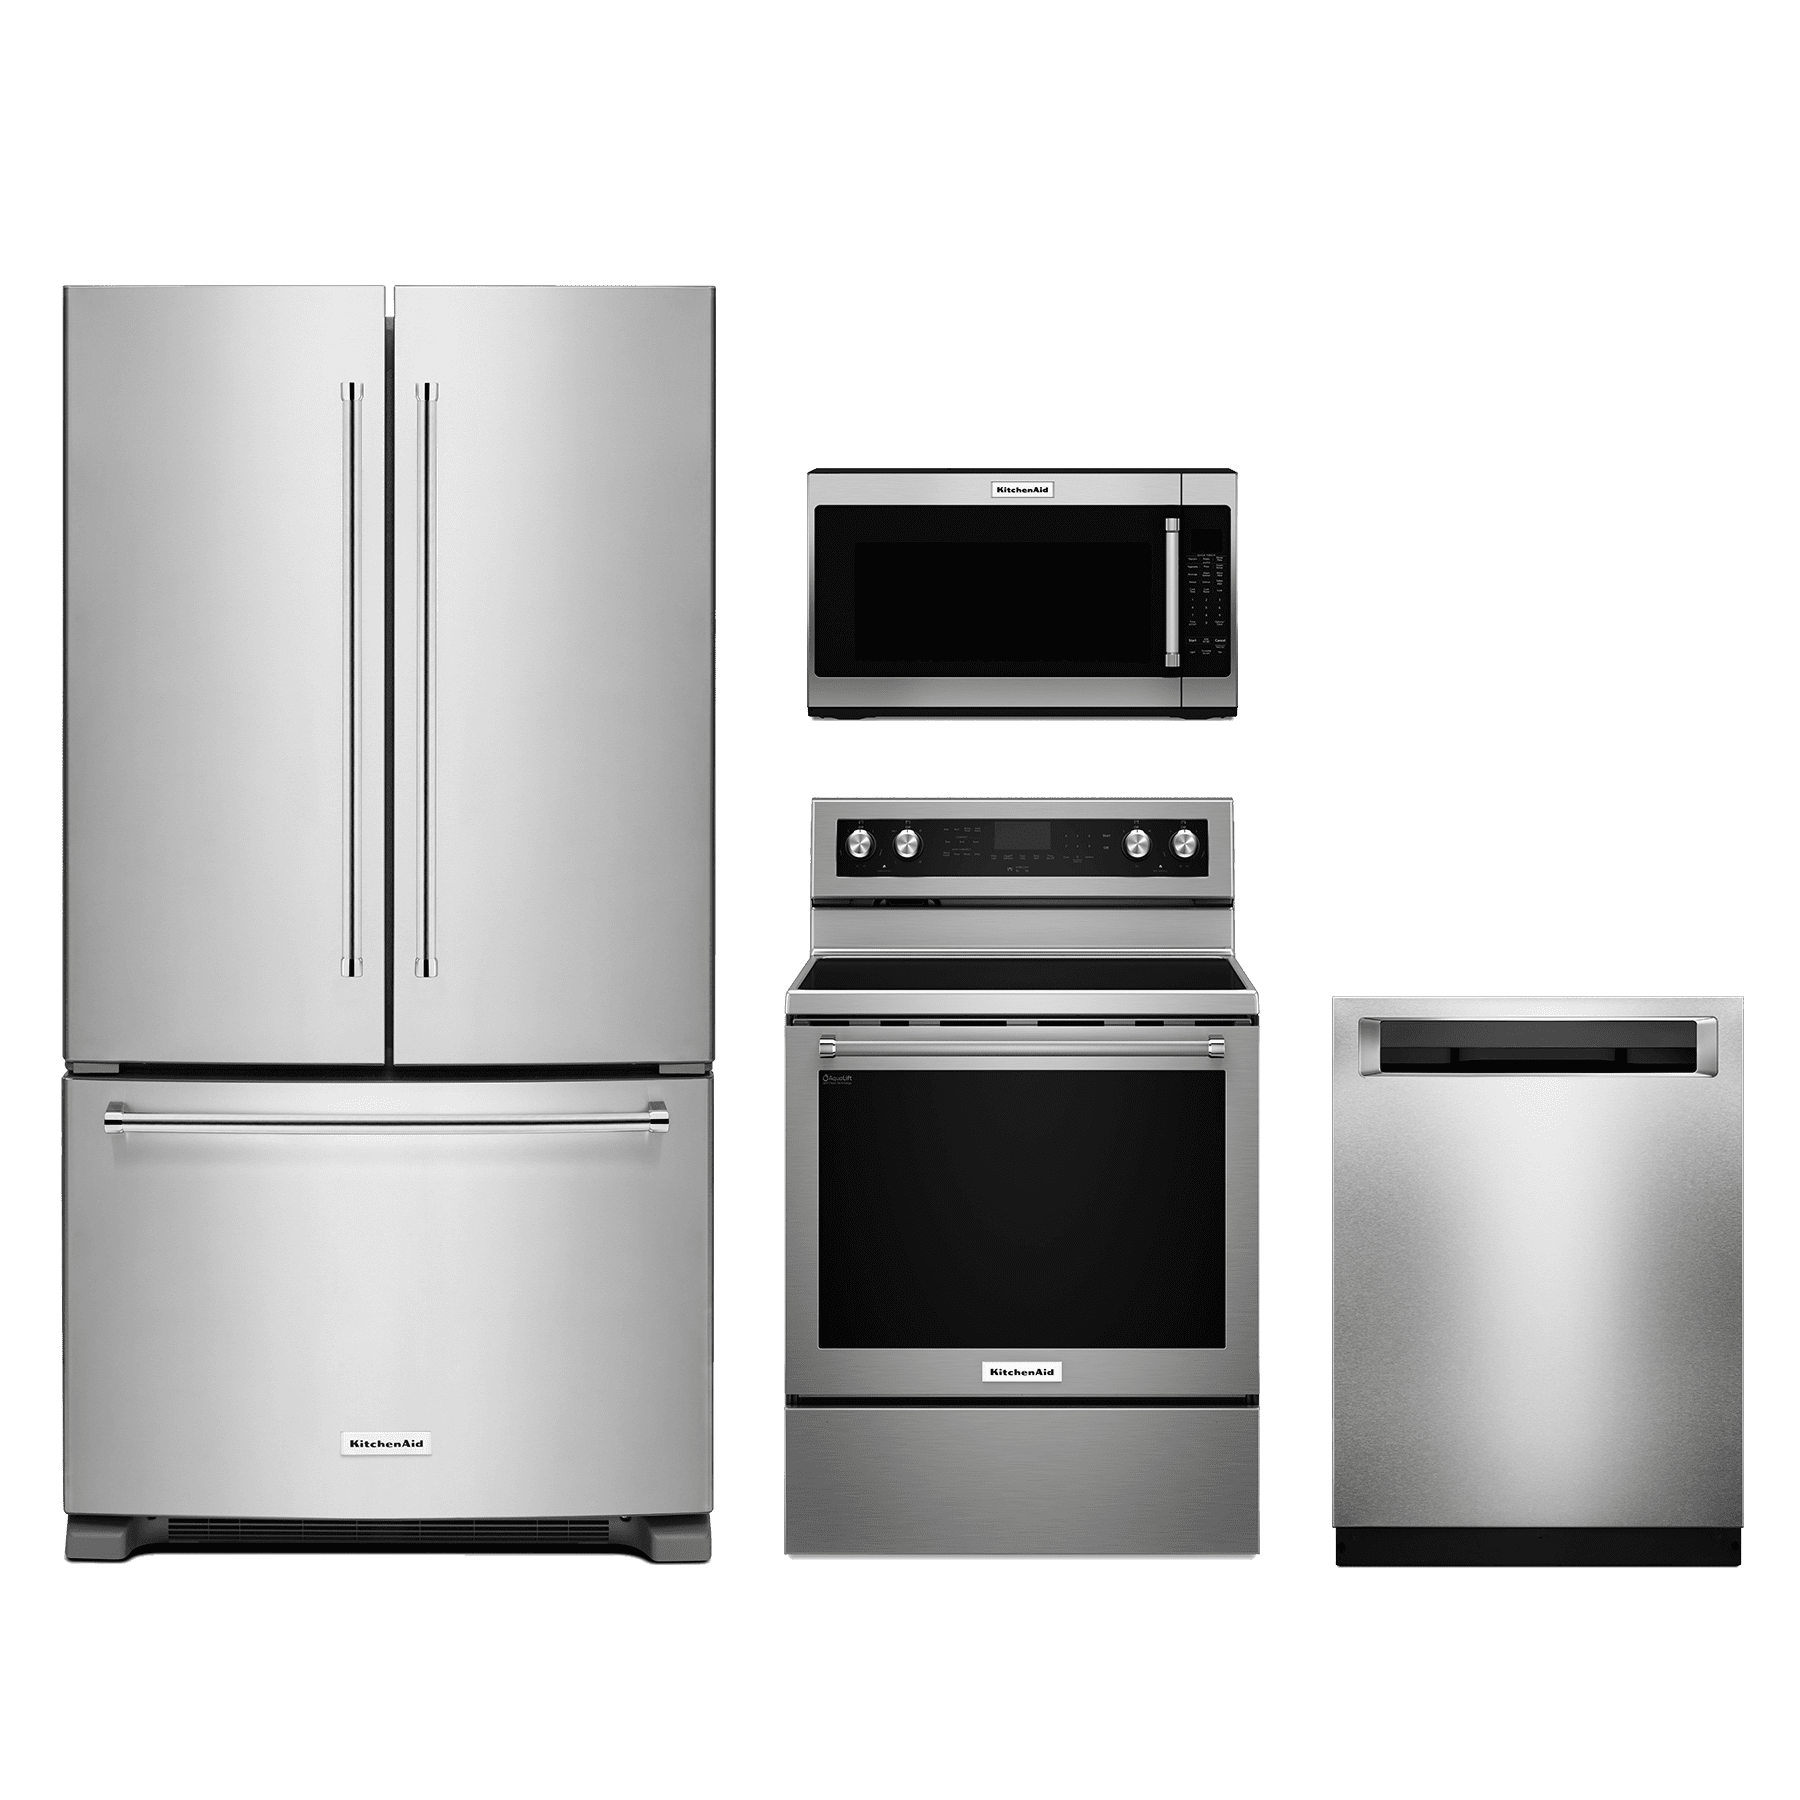 Appliances | Home Appliances, Kitchen Appliances, Laundry in ... on hotpoint appliances, magic chef appliances, sears appliances, ge appliances, miele appliances, amana appliances, sharp appliances, samsung appliances, gaggenau appliances, disney appliances, general electric appliances, sub-zero appliances, thermador appliances, sub zero appliances, smeg appliances, hamilton beach appliances, jenn-air appliances, whirlpool appliances, frigidaire appliances, bosch appliances, maytag appliances, dacor appliances, lg appliances, viking appliances, electrolux appliances, wolf appliances,